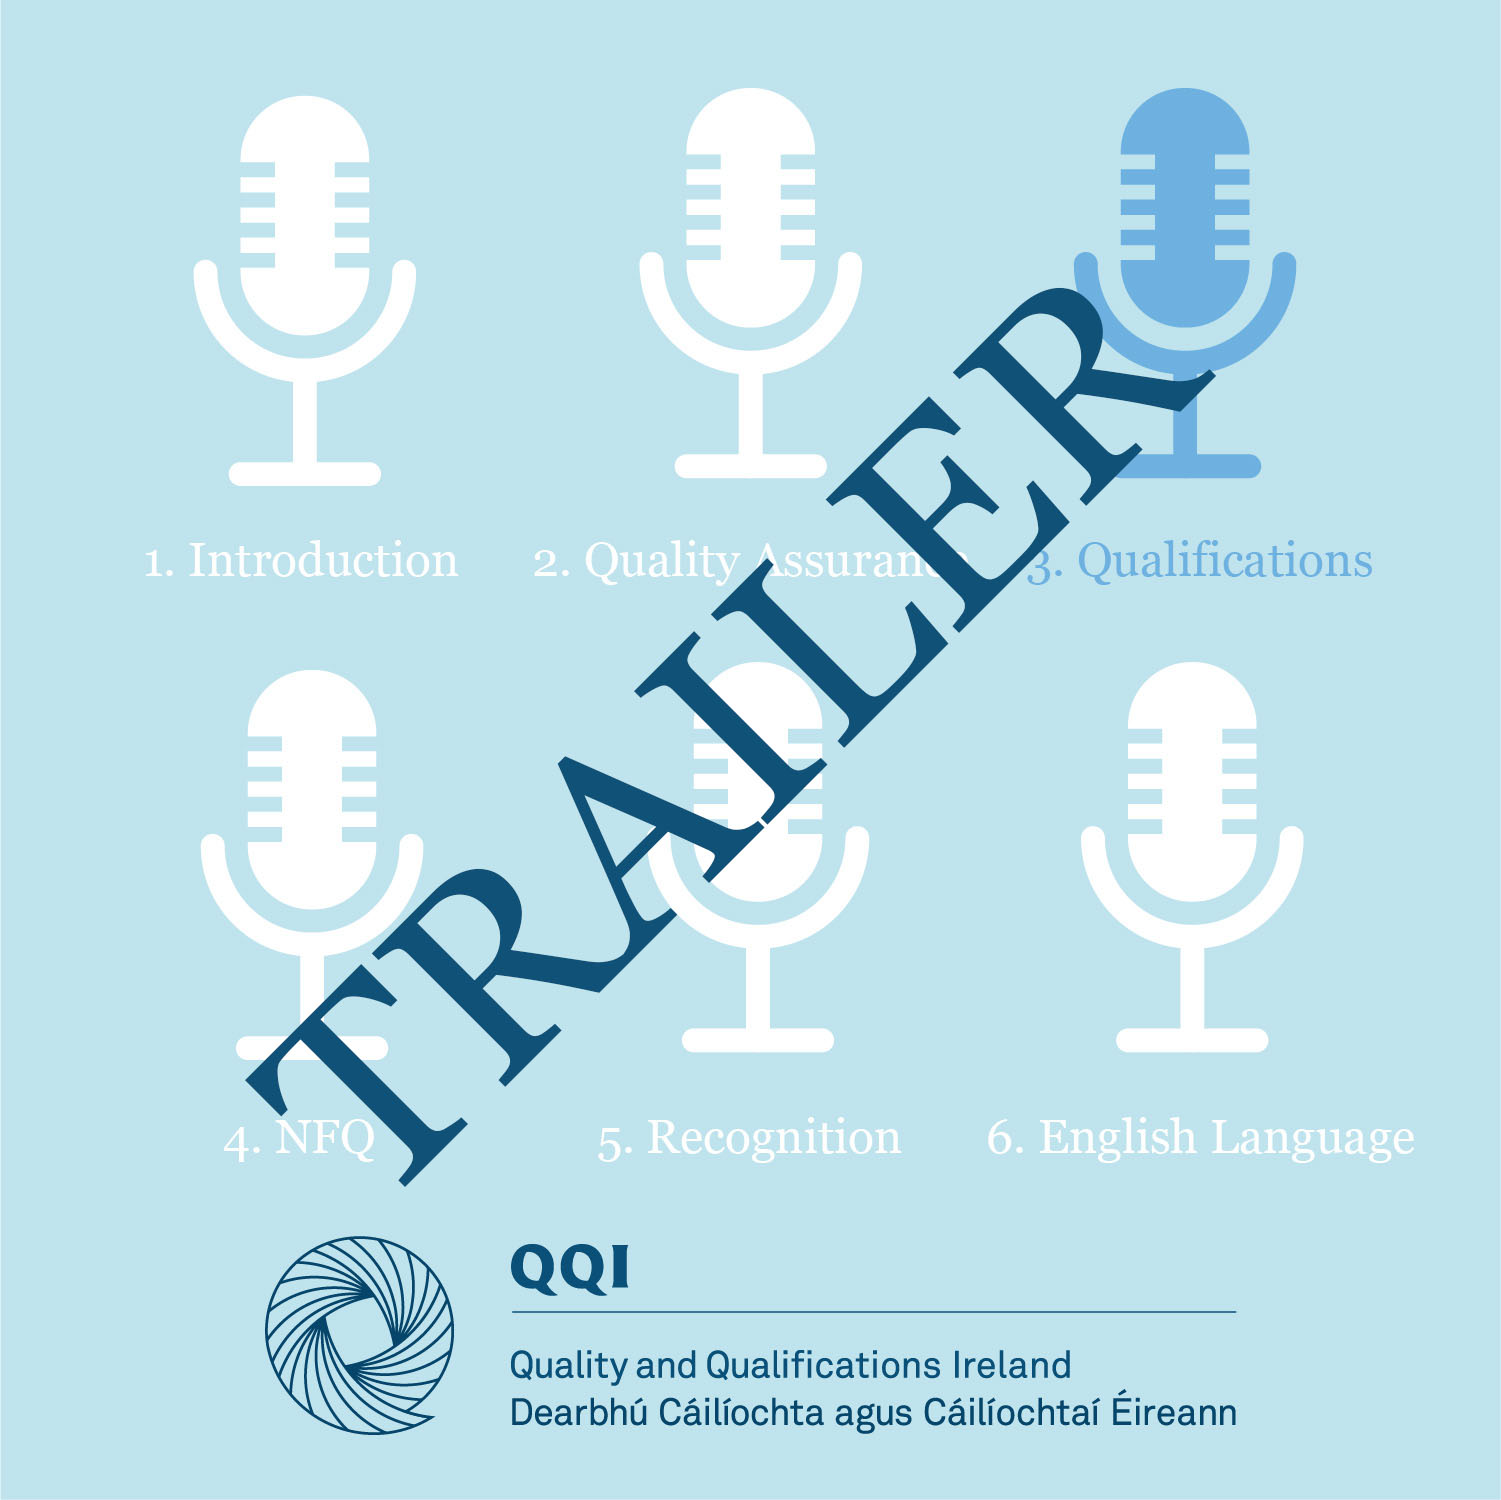 3. Qualifications and the QQI Award—Trailer 2